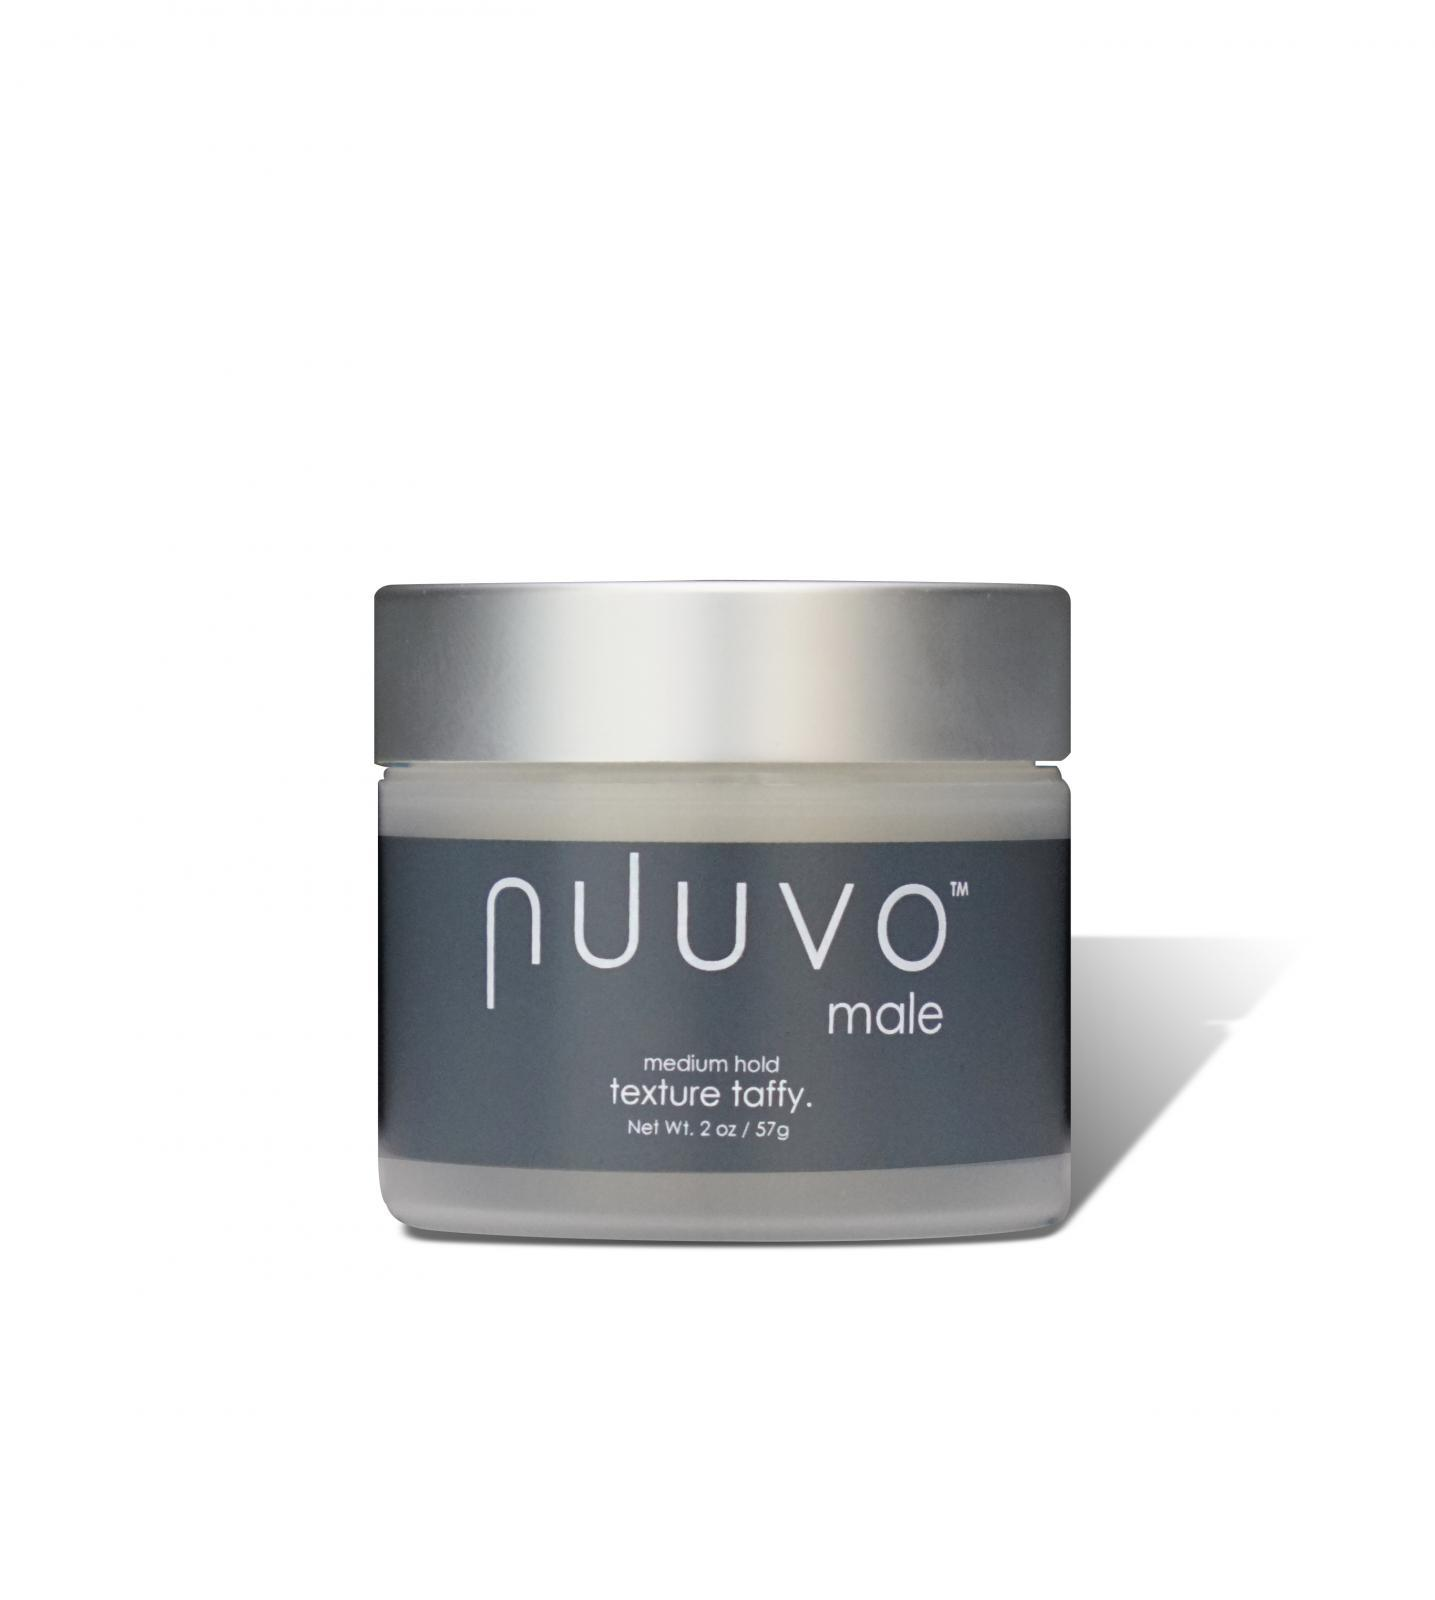 Nuuvo Haircare Texture Taffy - High Performance Sculpting Pomade for Molding, Gripping & Styling -  Medium Hold (Unisex)